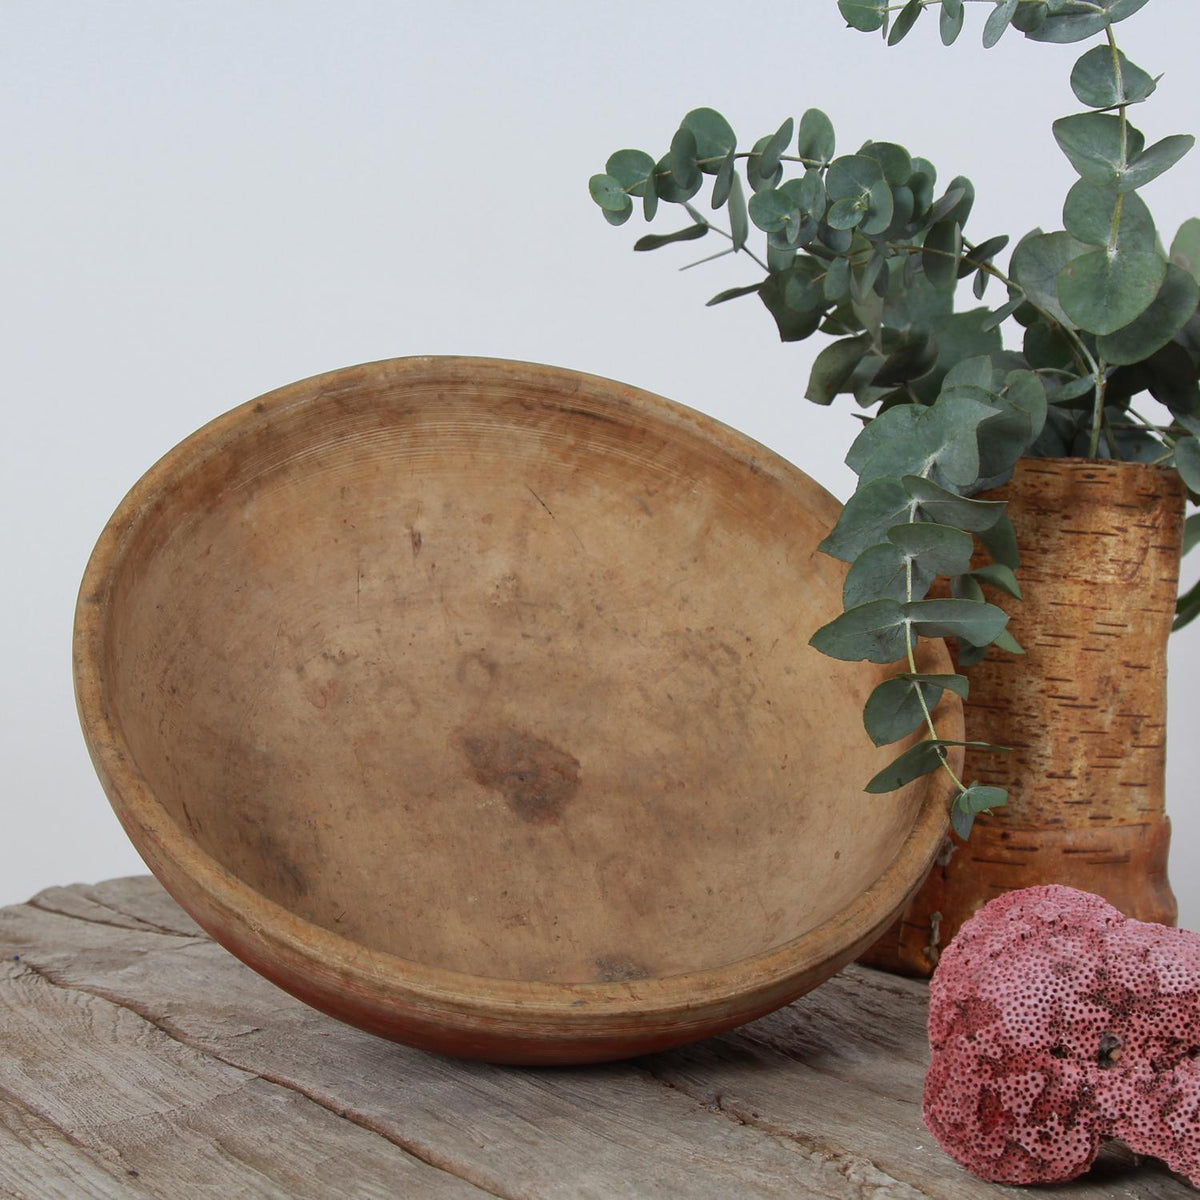 Mid-19th Century Authentic Swedish Turned Wooden Bowl